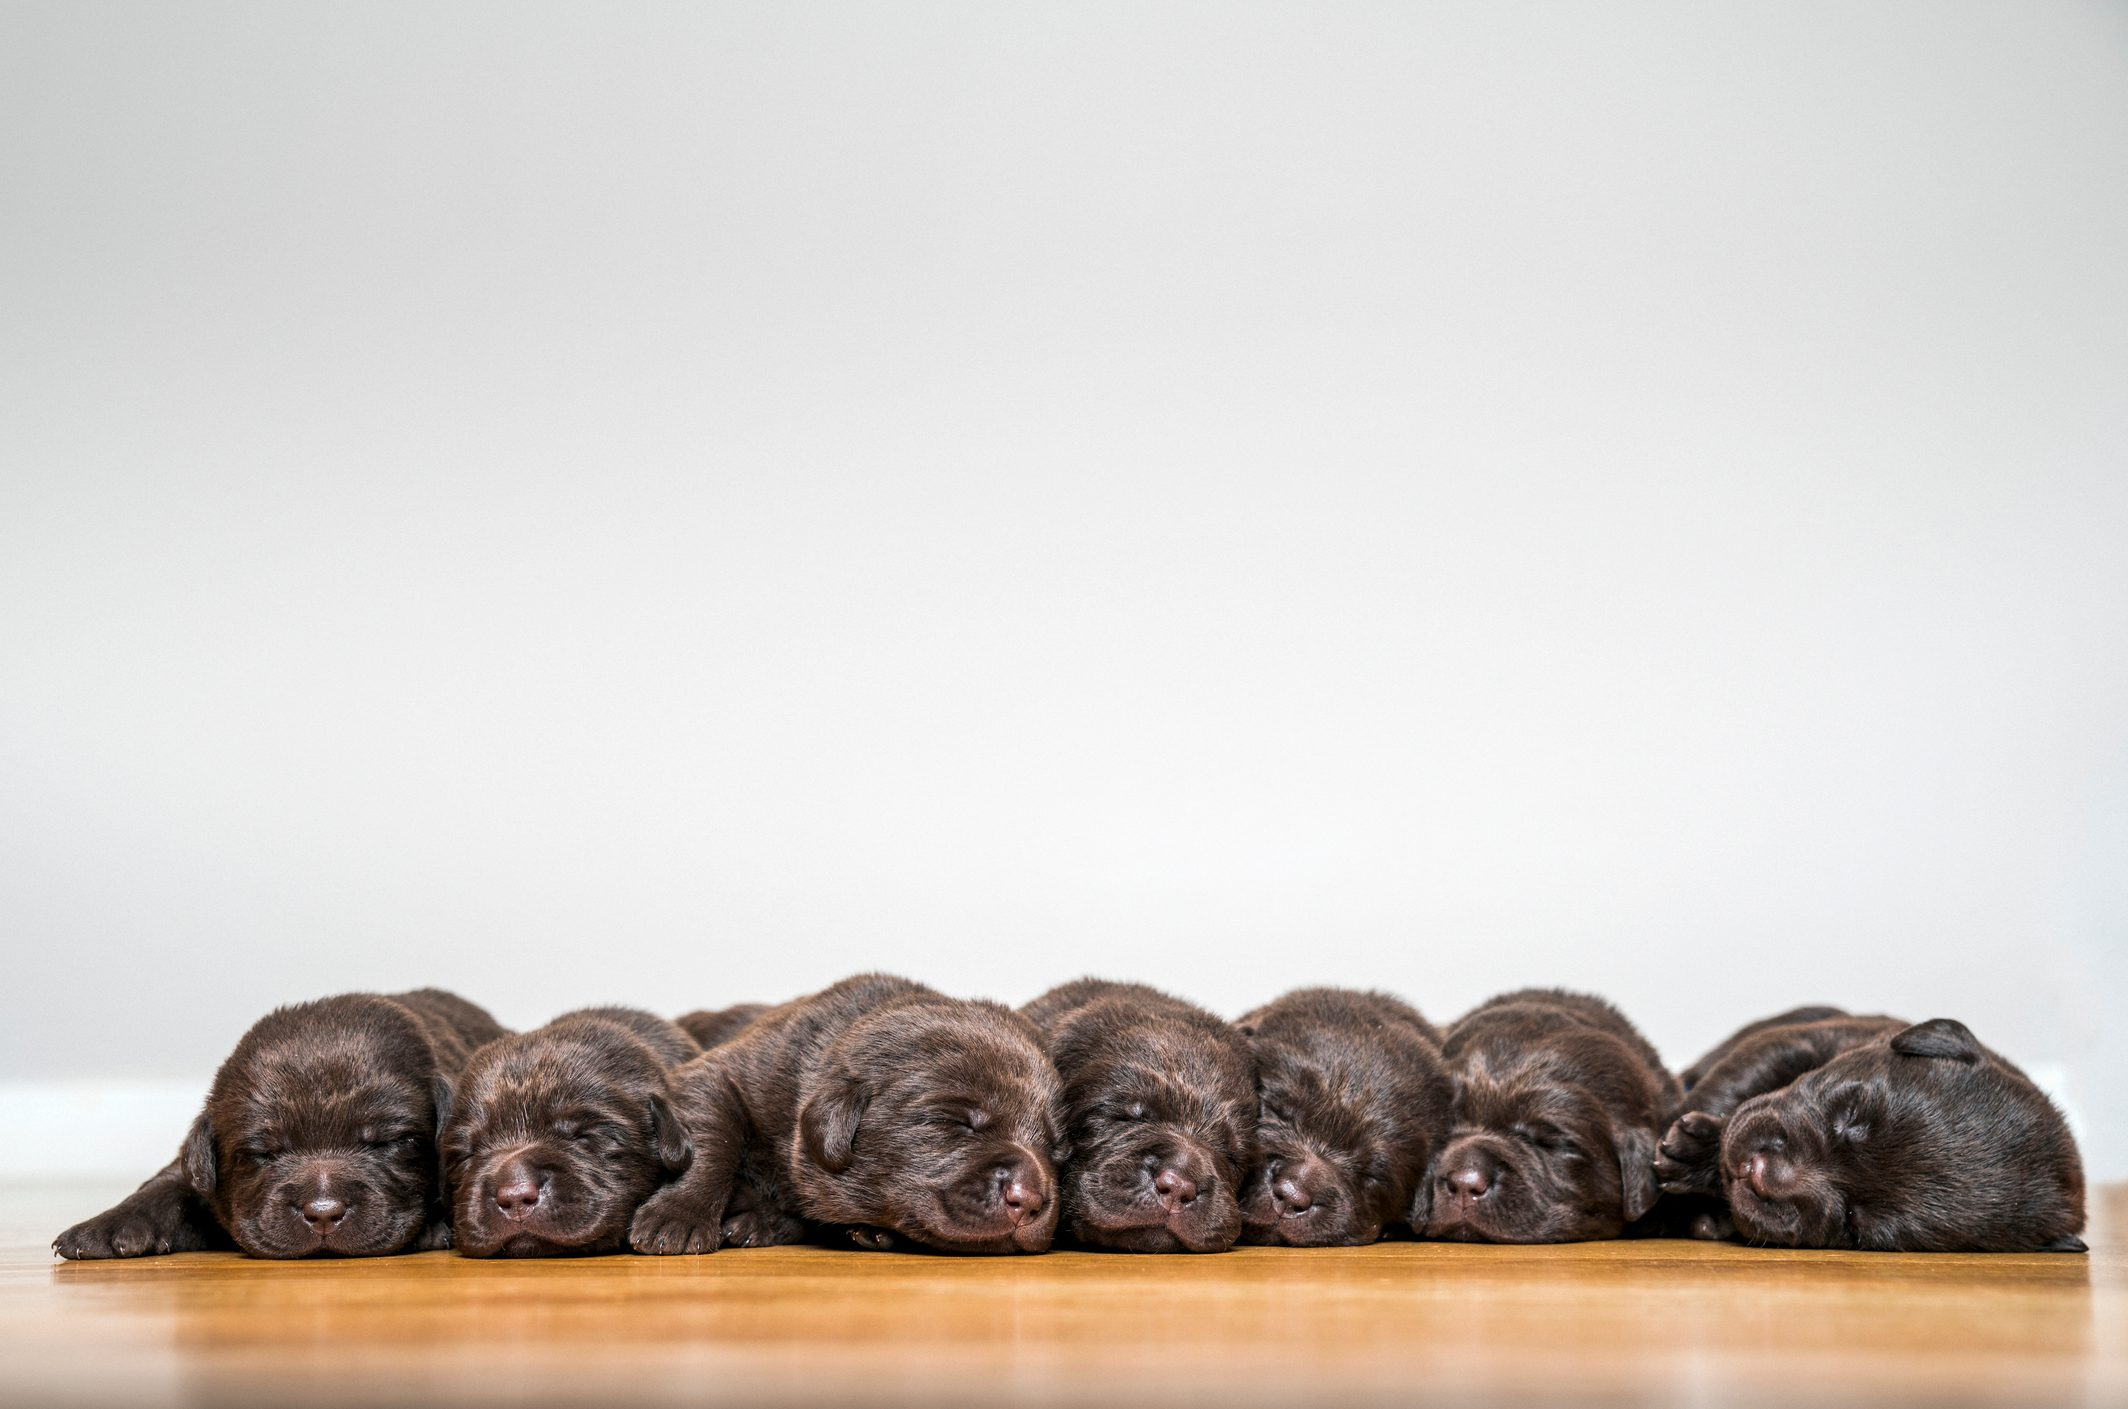 Labrador puppies laying against white background.